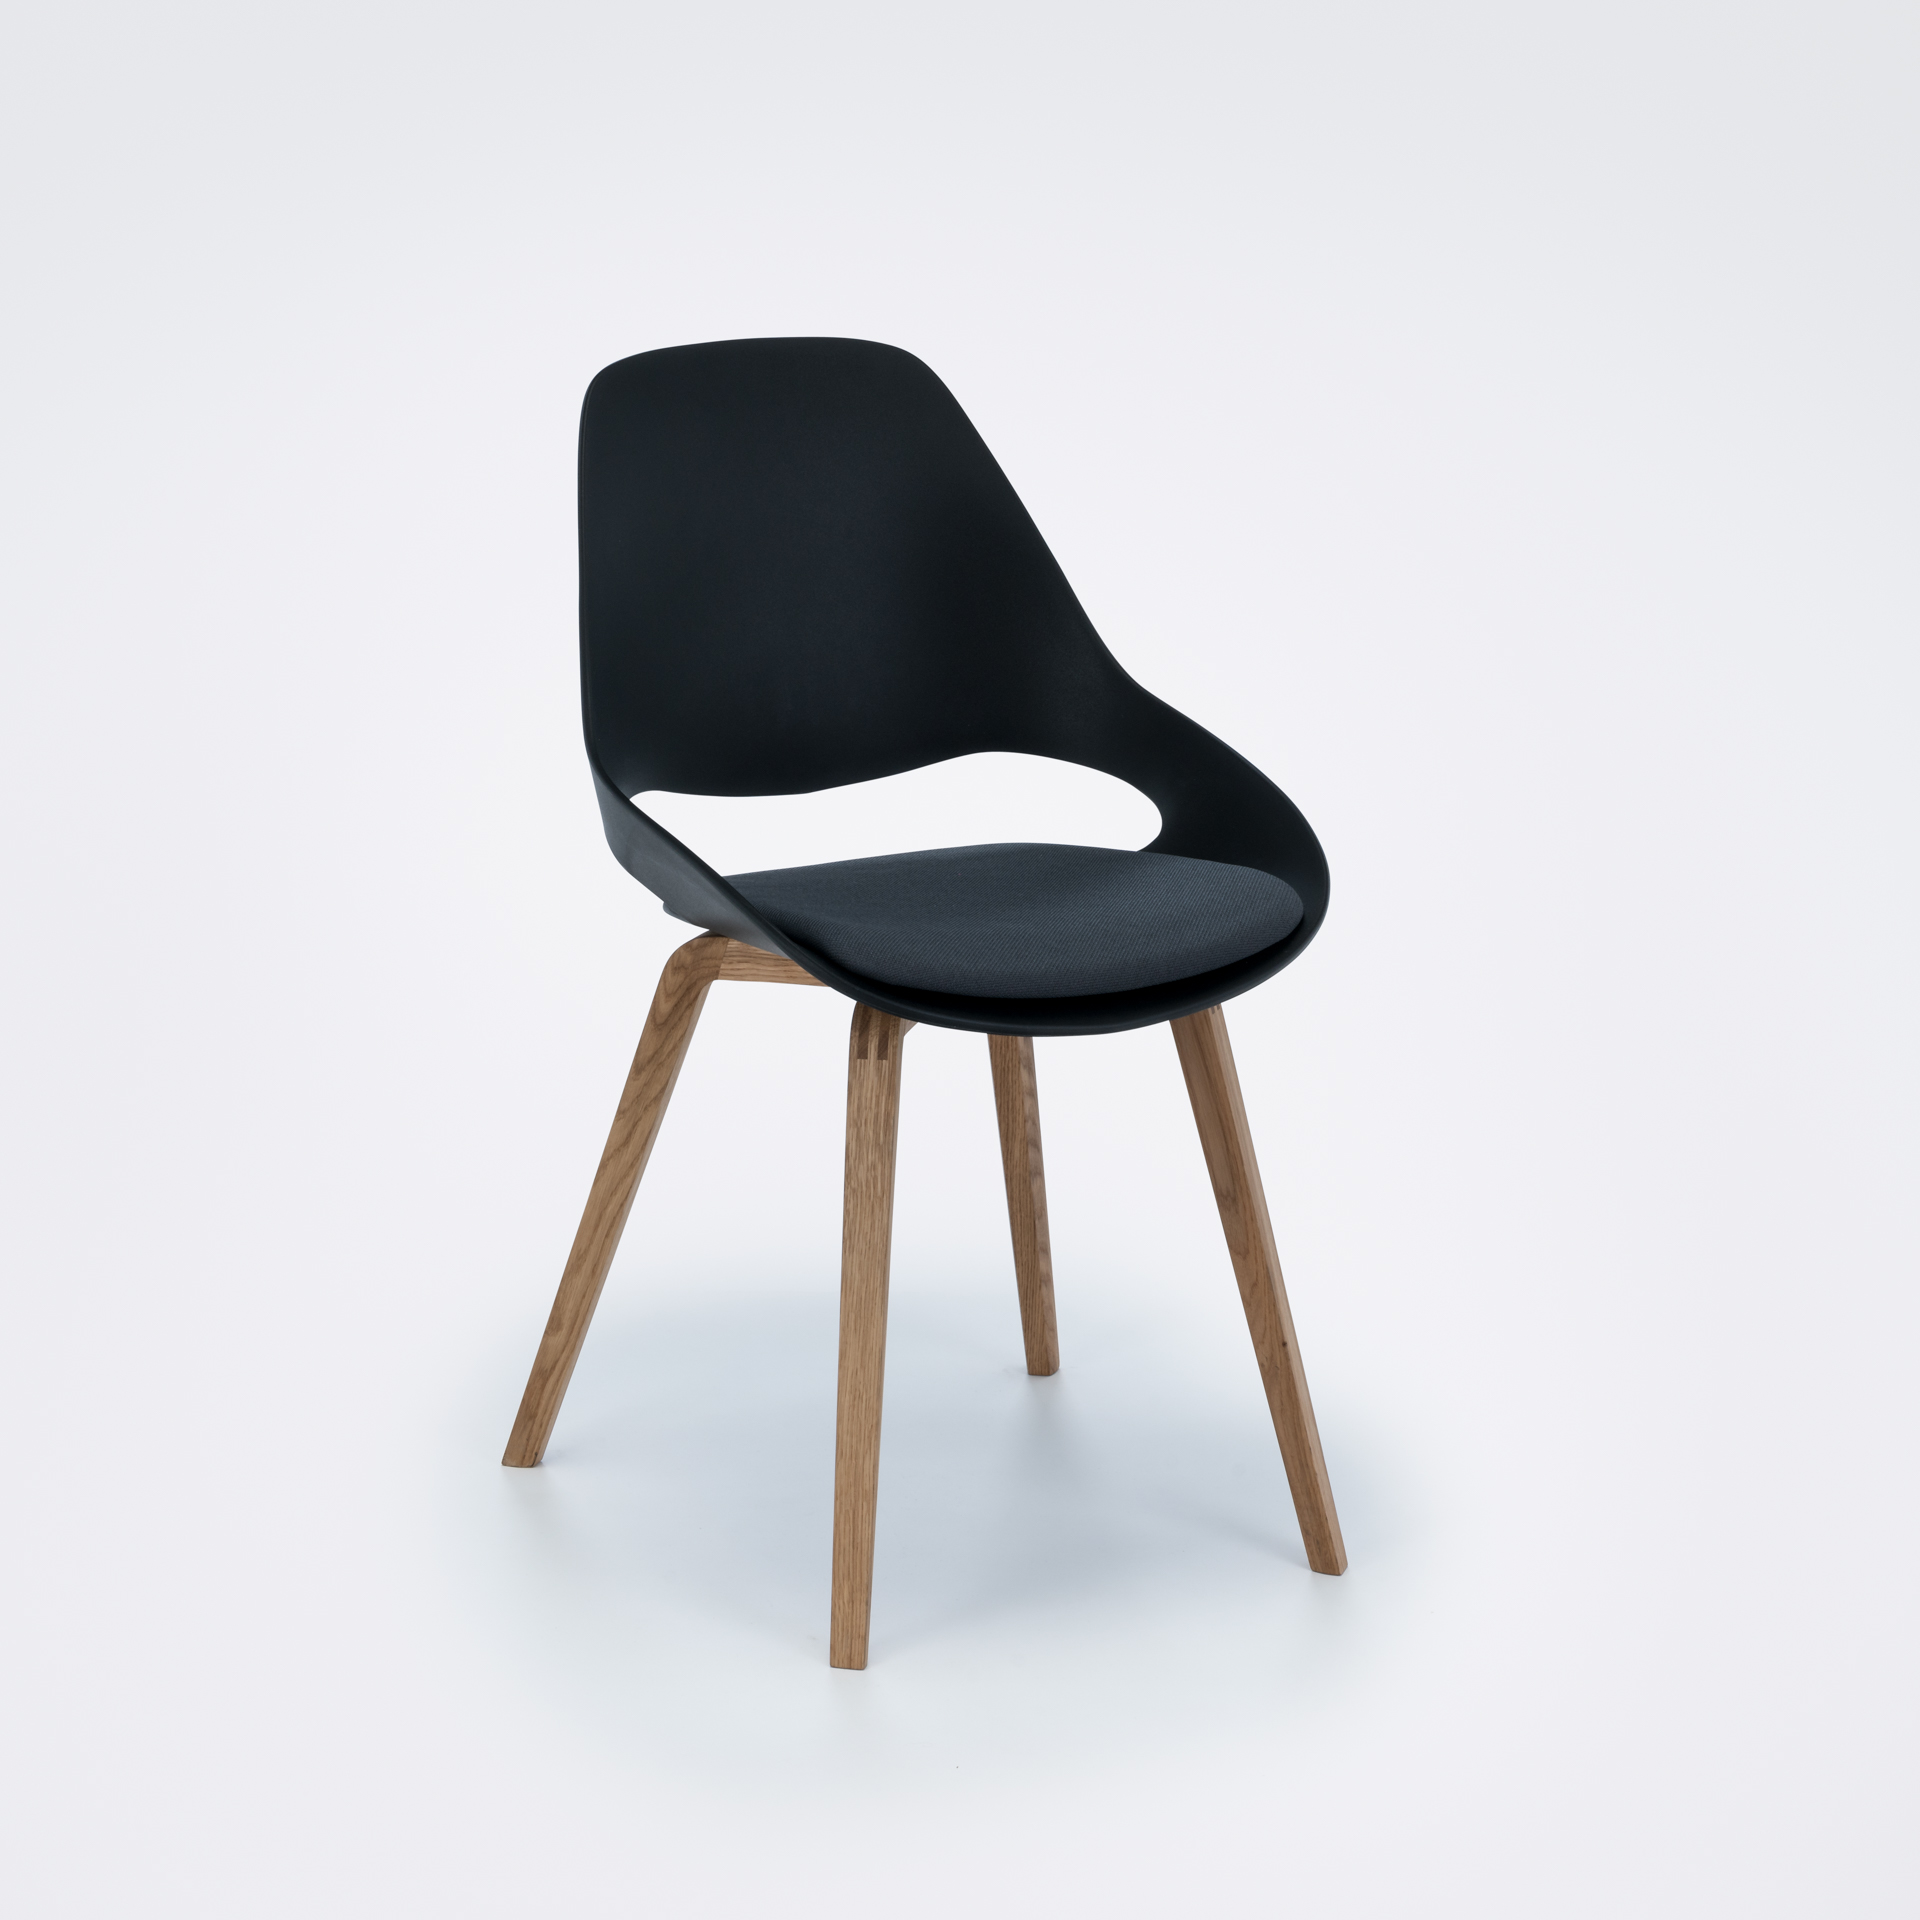 DINING CHAIR // PADDED SEAT // Black/carbon grey // Oiled Oak legs